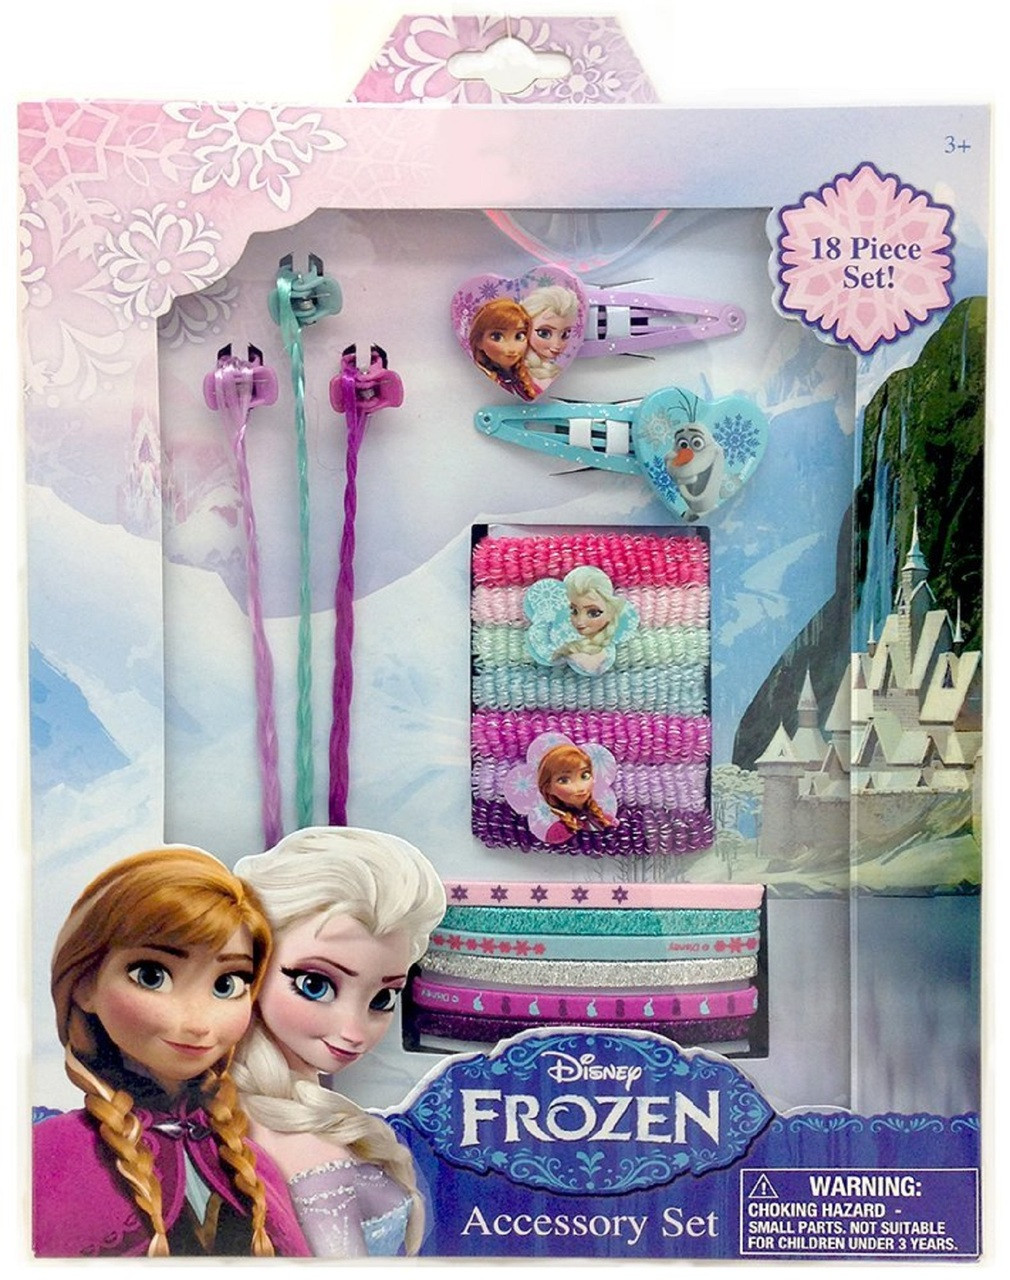 Disney Frozen 18pc Accessory Set